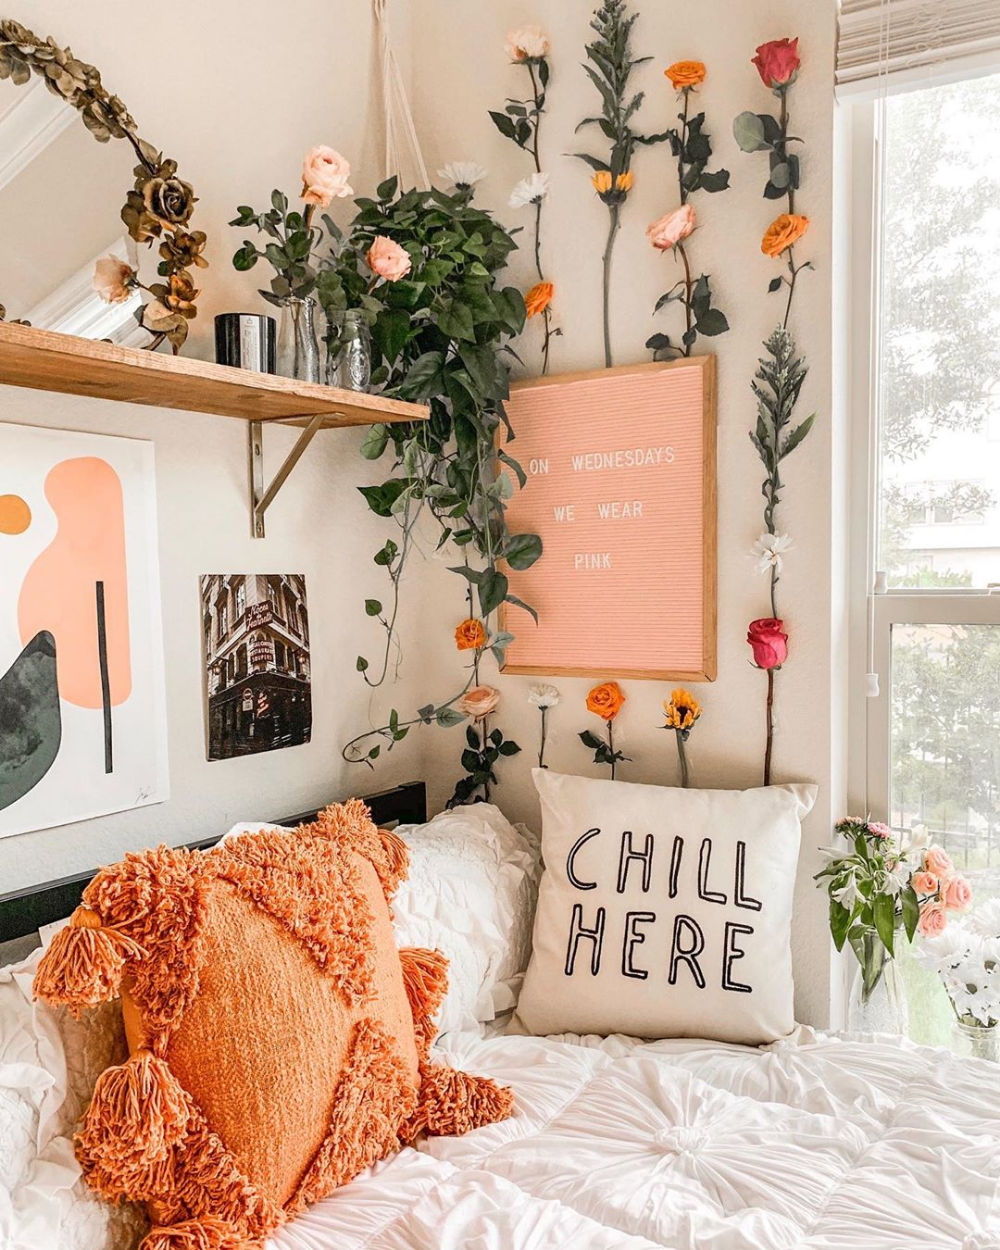 Urban Outfitters Home (@urbanoutfittershome) • Instagram photos